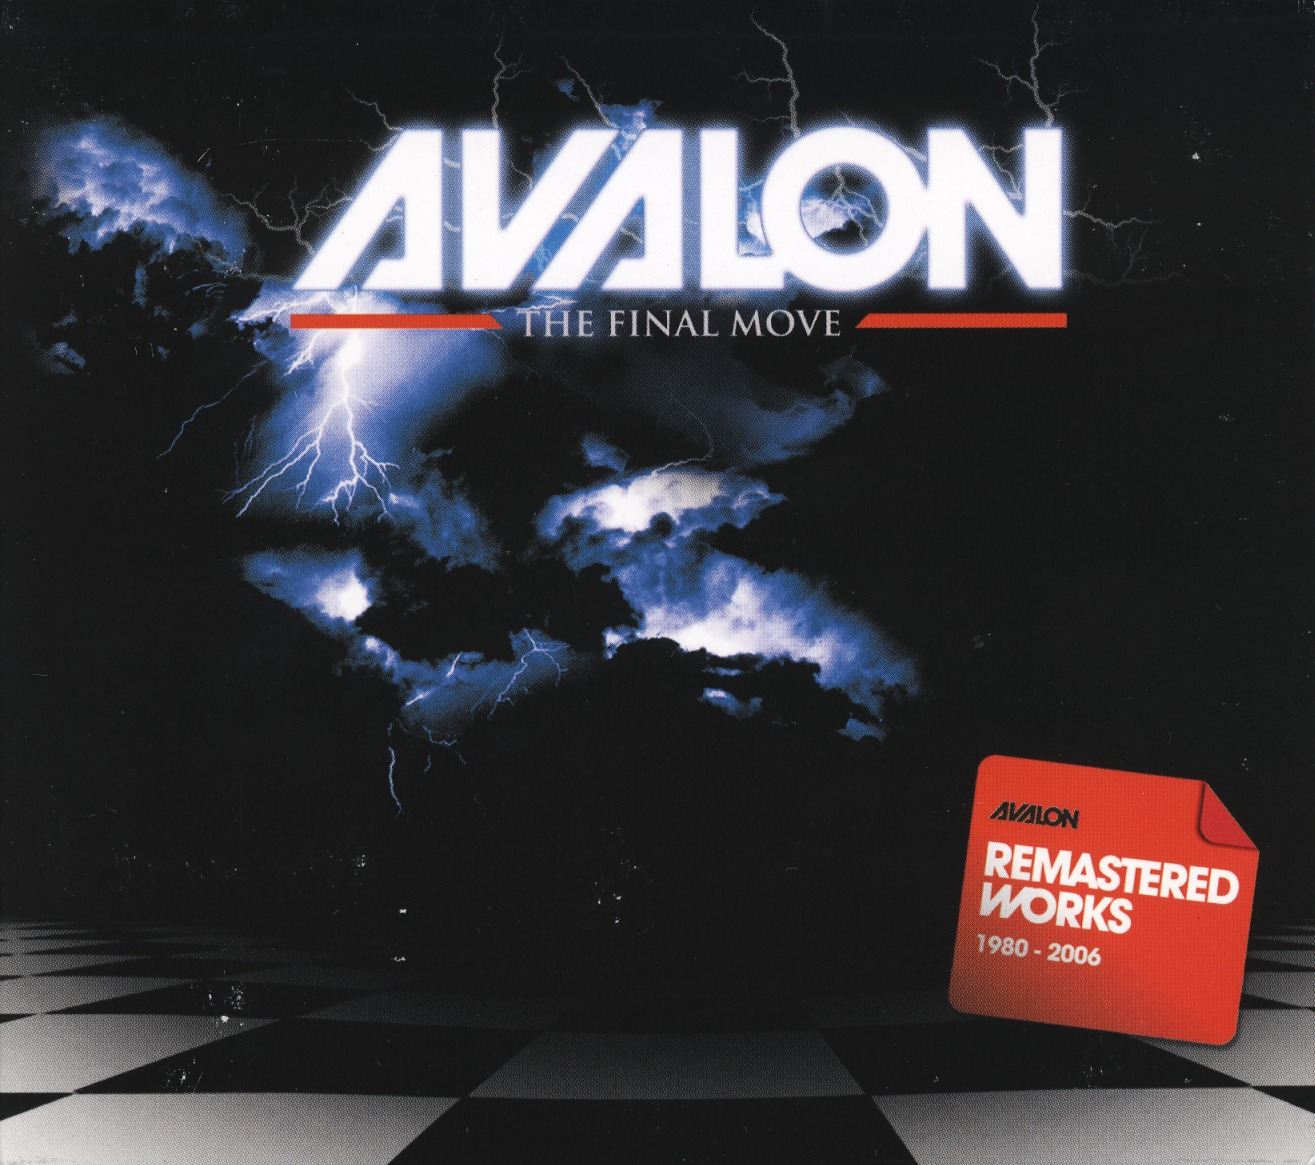 AVALON(Netherlands) / The Final Move: Remastered Works 1980-2006 (2CD)